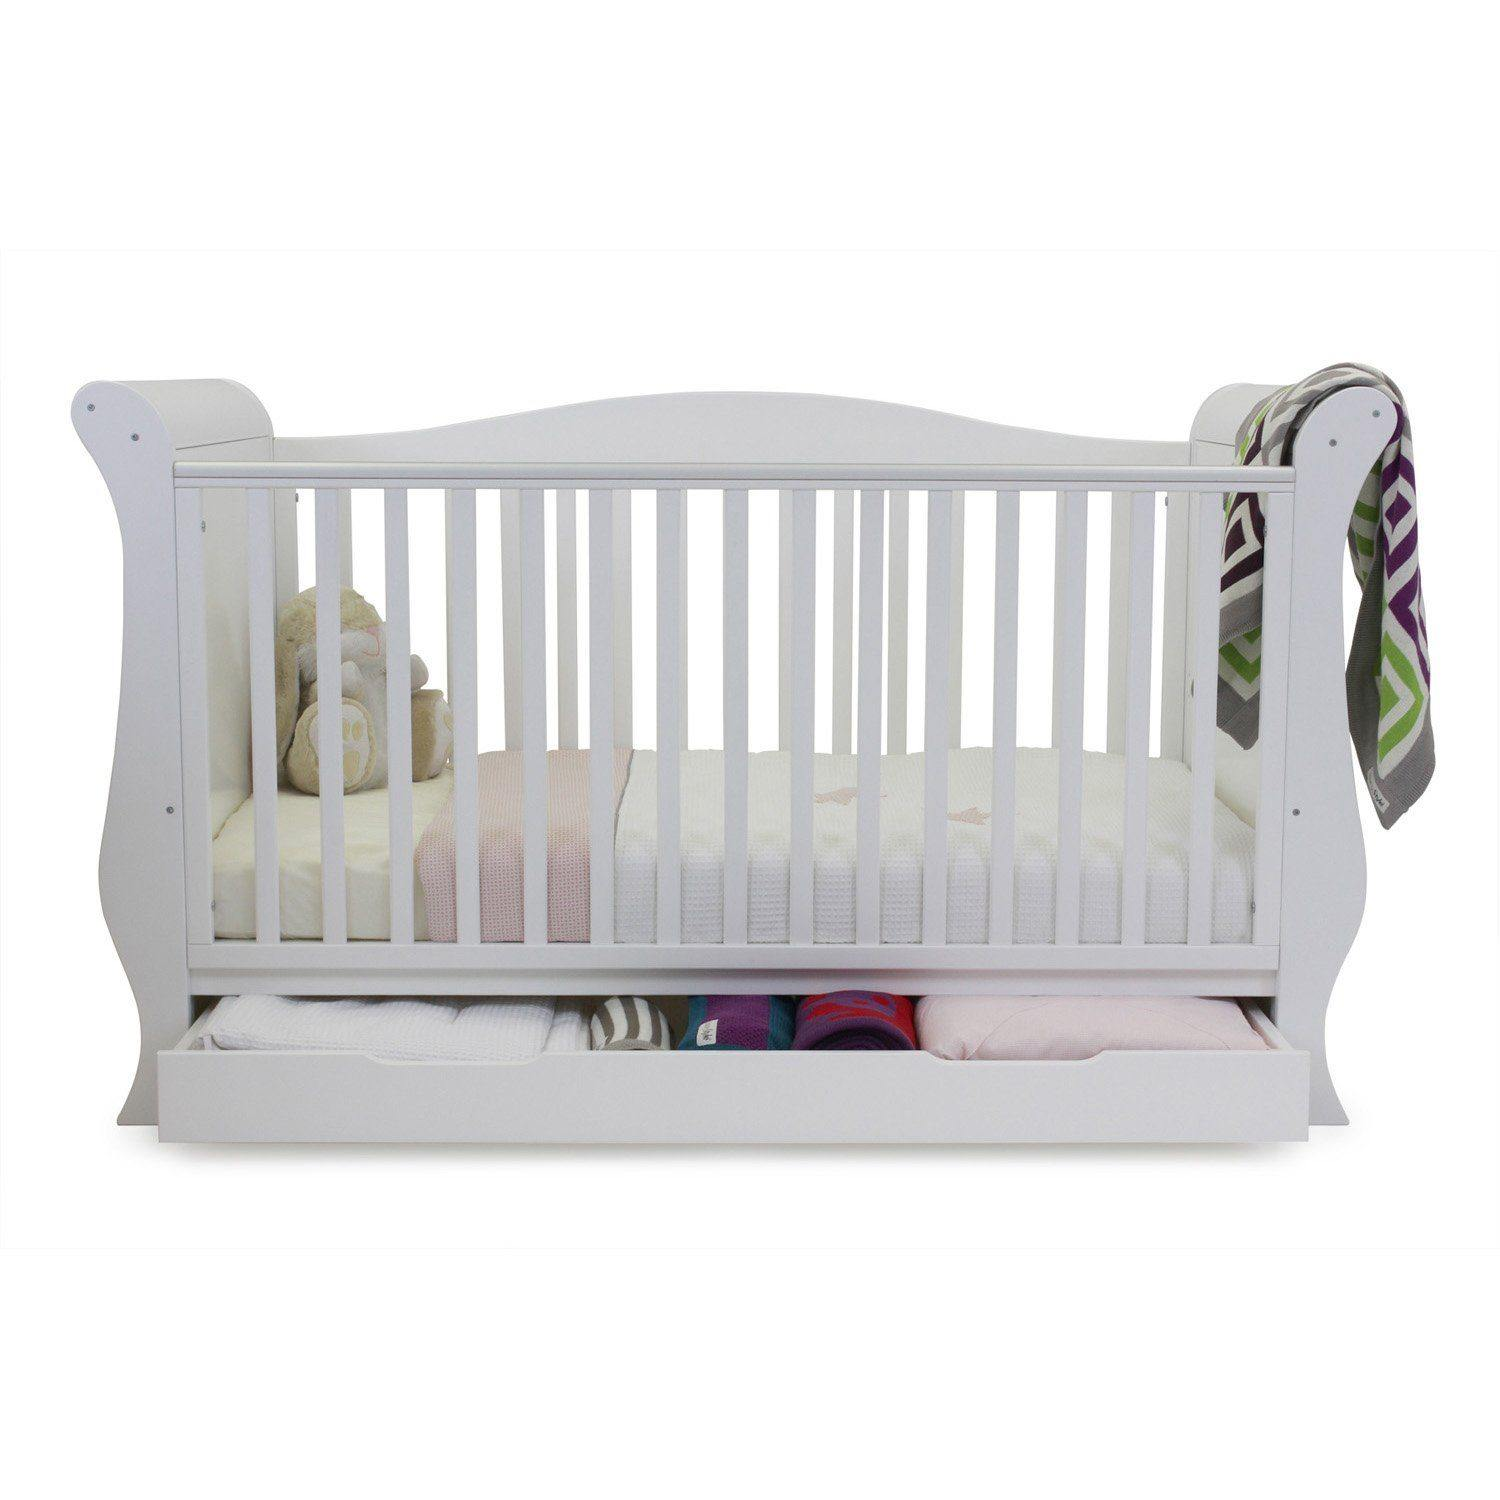 BabyStyle Charnwood Hollie Sleigh Bed - Pushchair Expert